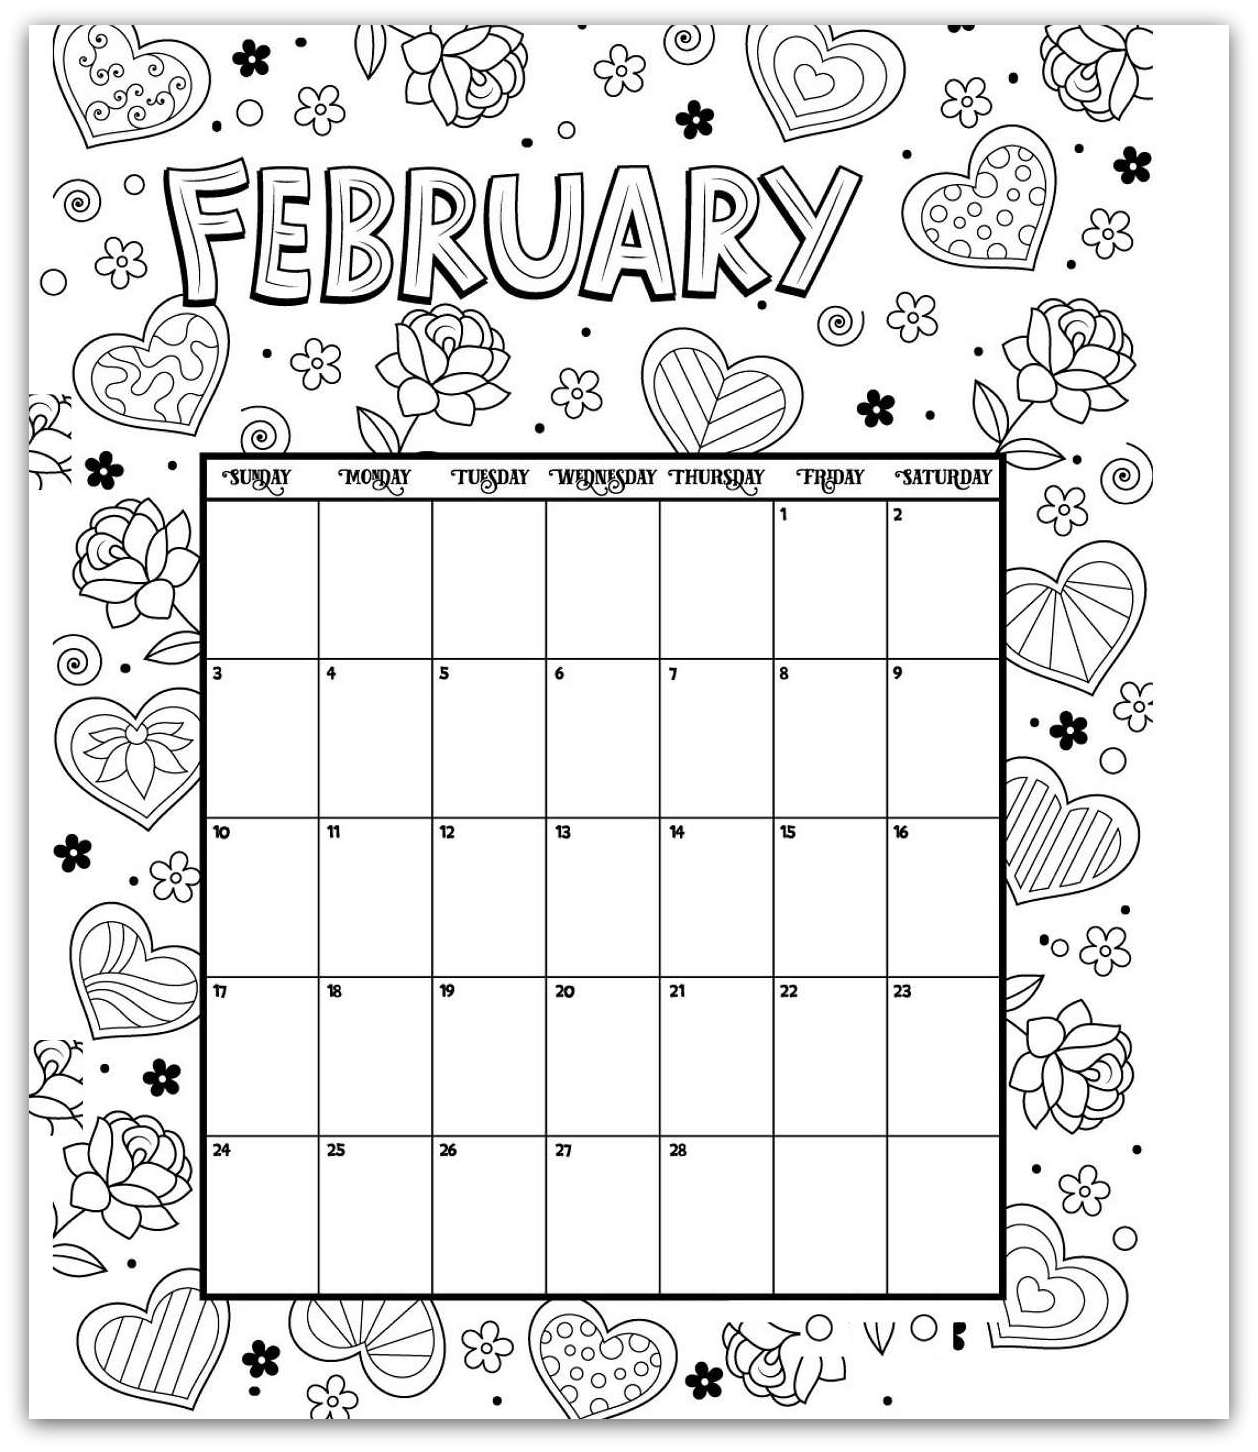 February 2019 Coloring Page Printable Calendar